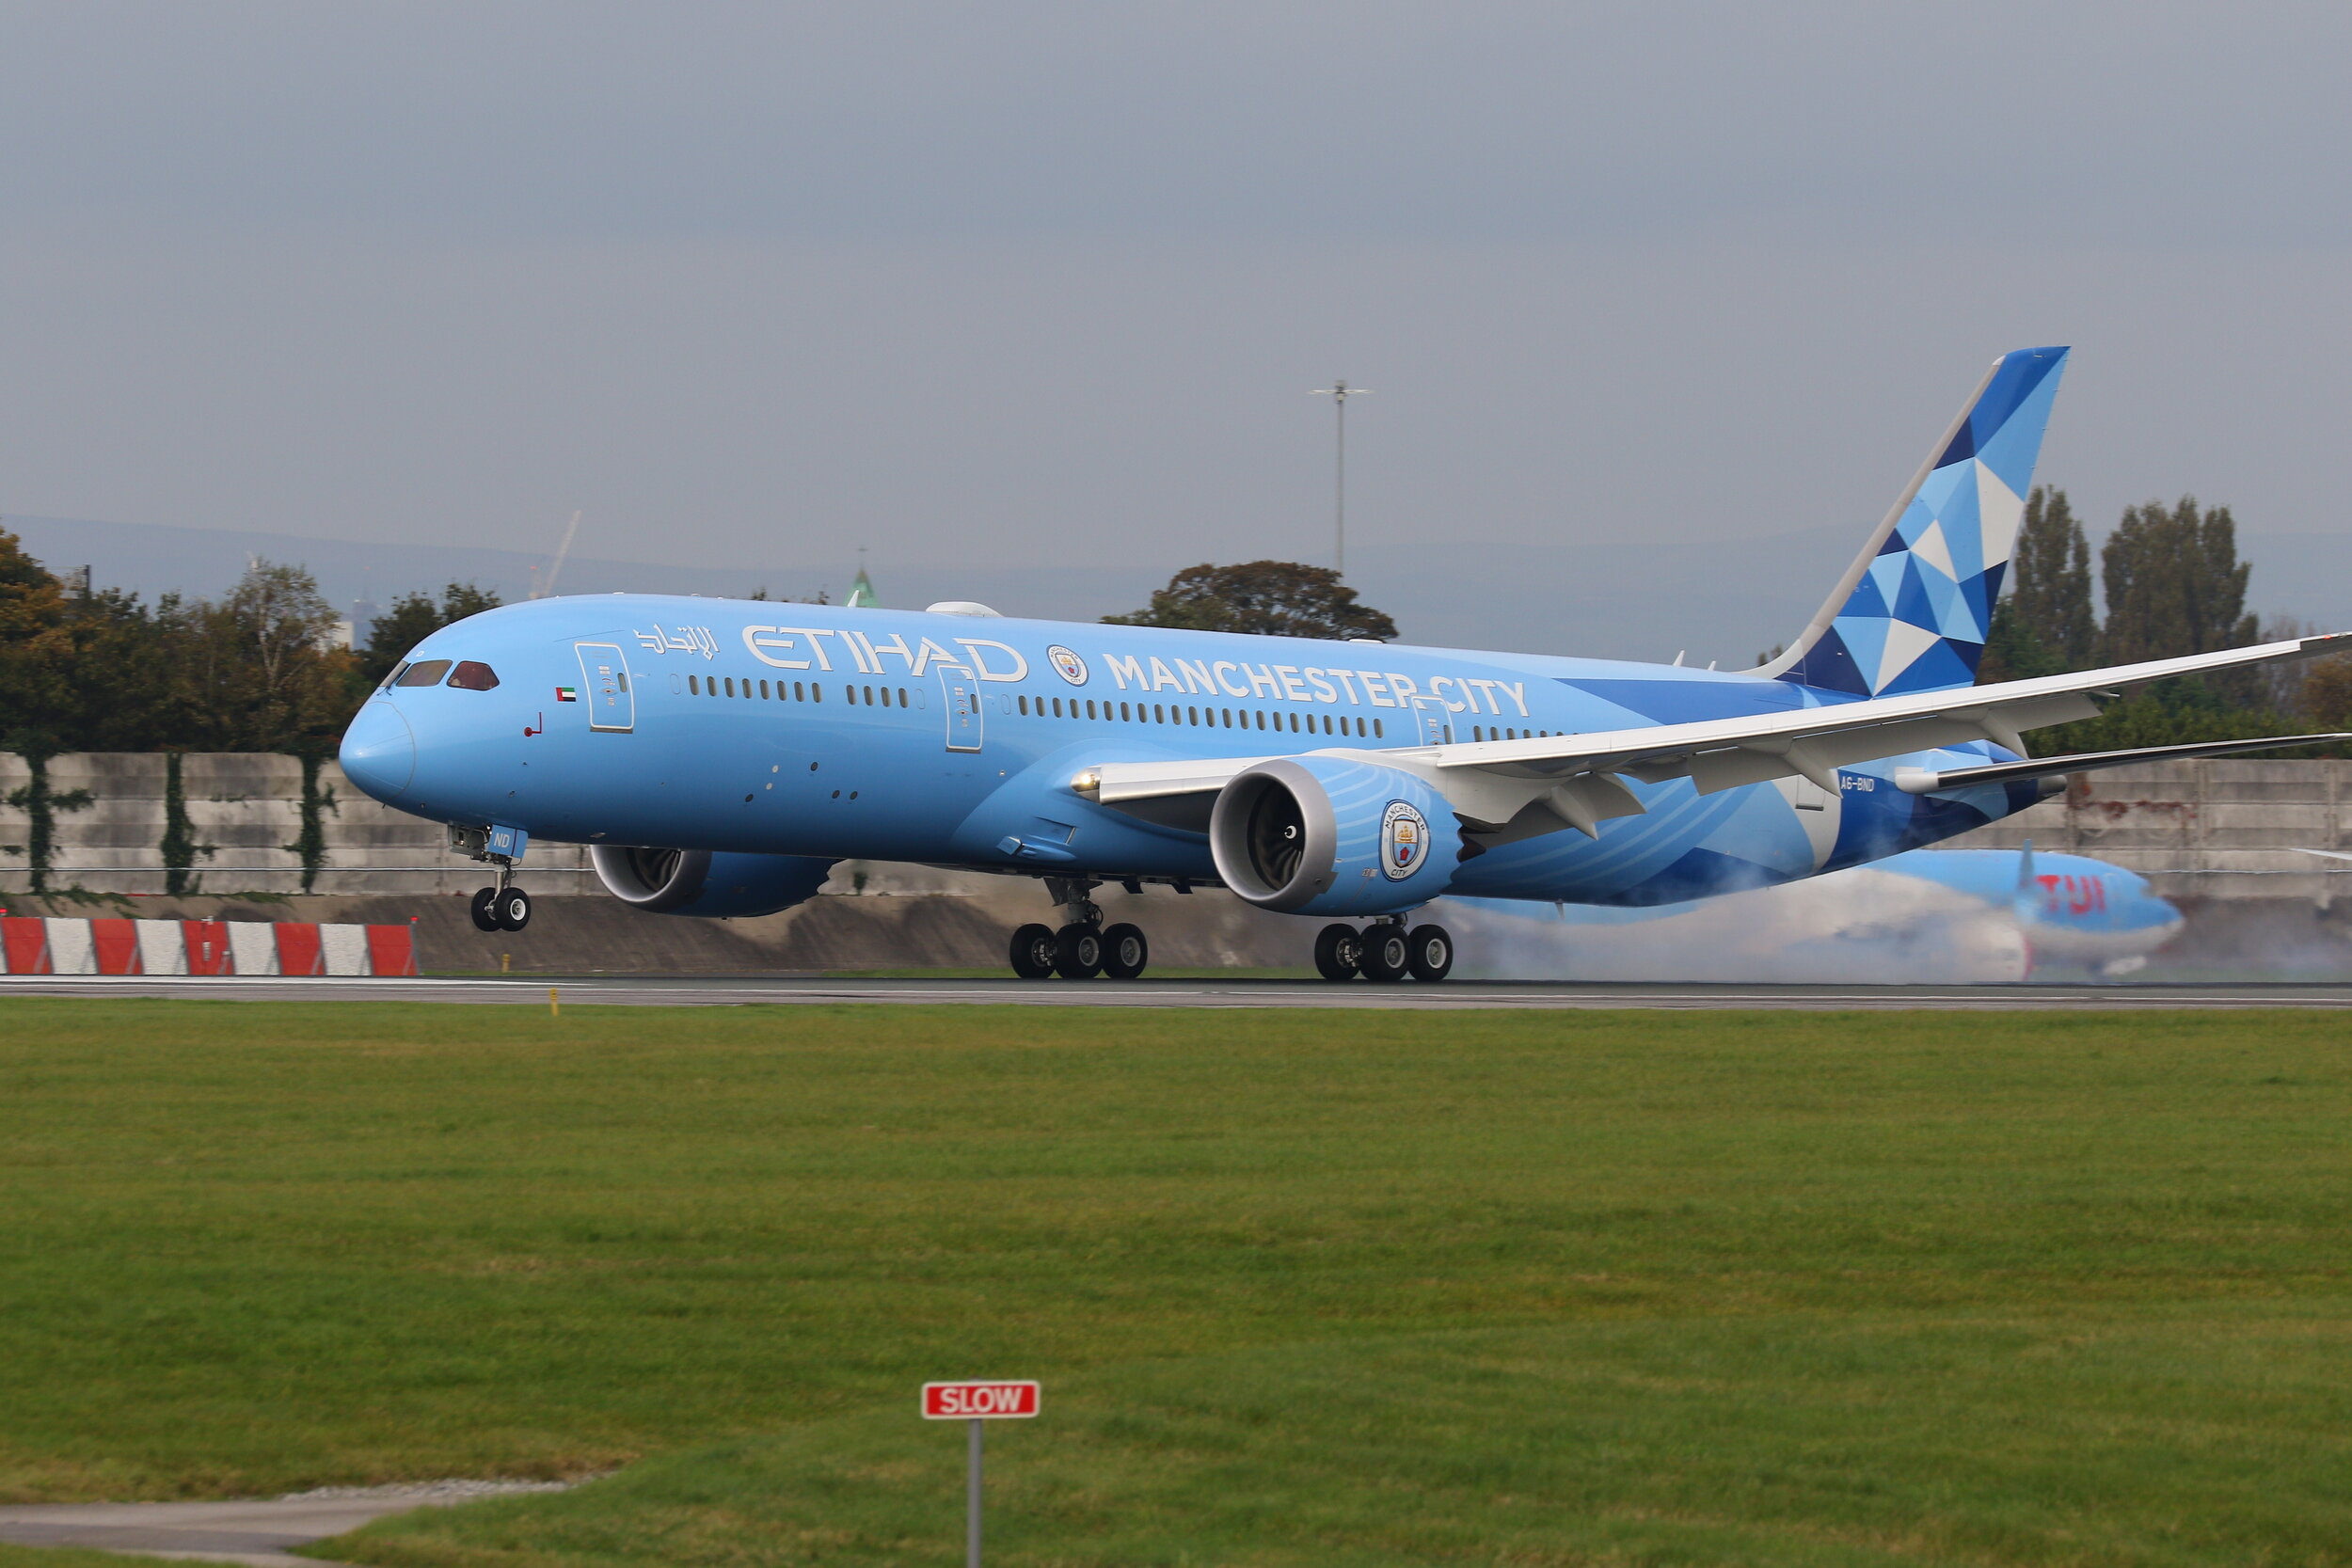 As expected (and quite correctly) the Etihad B787-9 A6-BND in its Man City livery is becoming a regular visitor to Manchester. She was nicely captured touching down on Runway 23 Right on 22nd October. Photo: Maurice Kime.